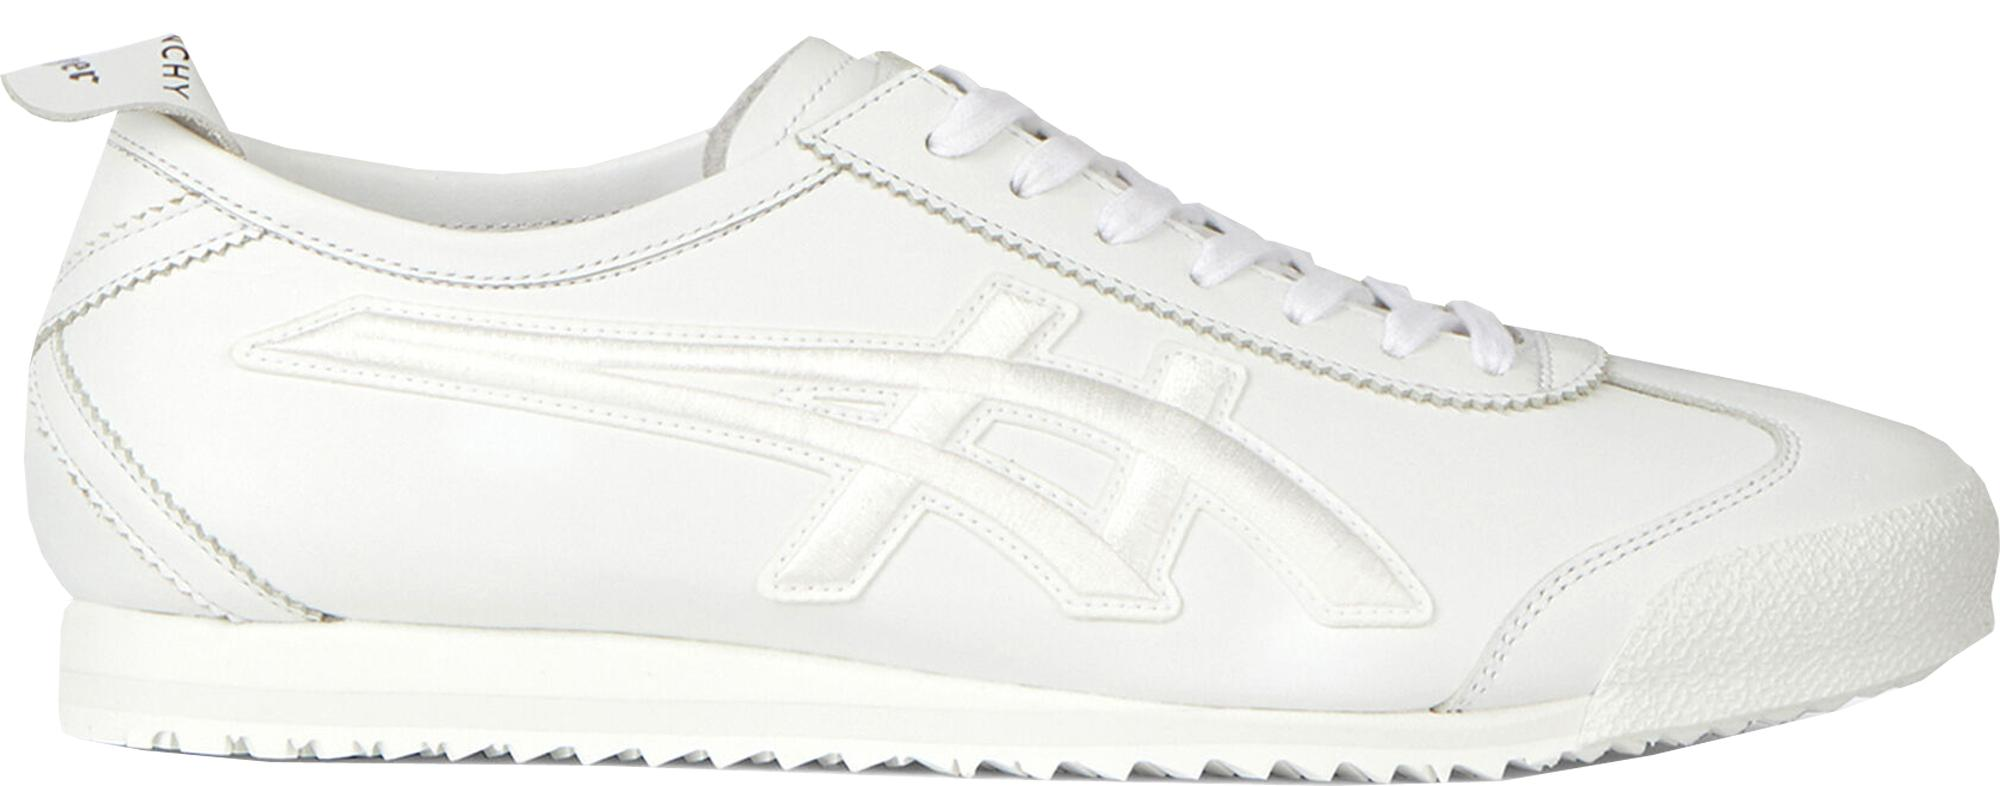 onitsuka tiger mexico 66 shoes online original watches london